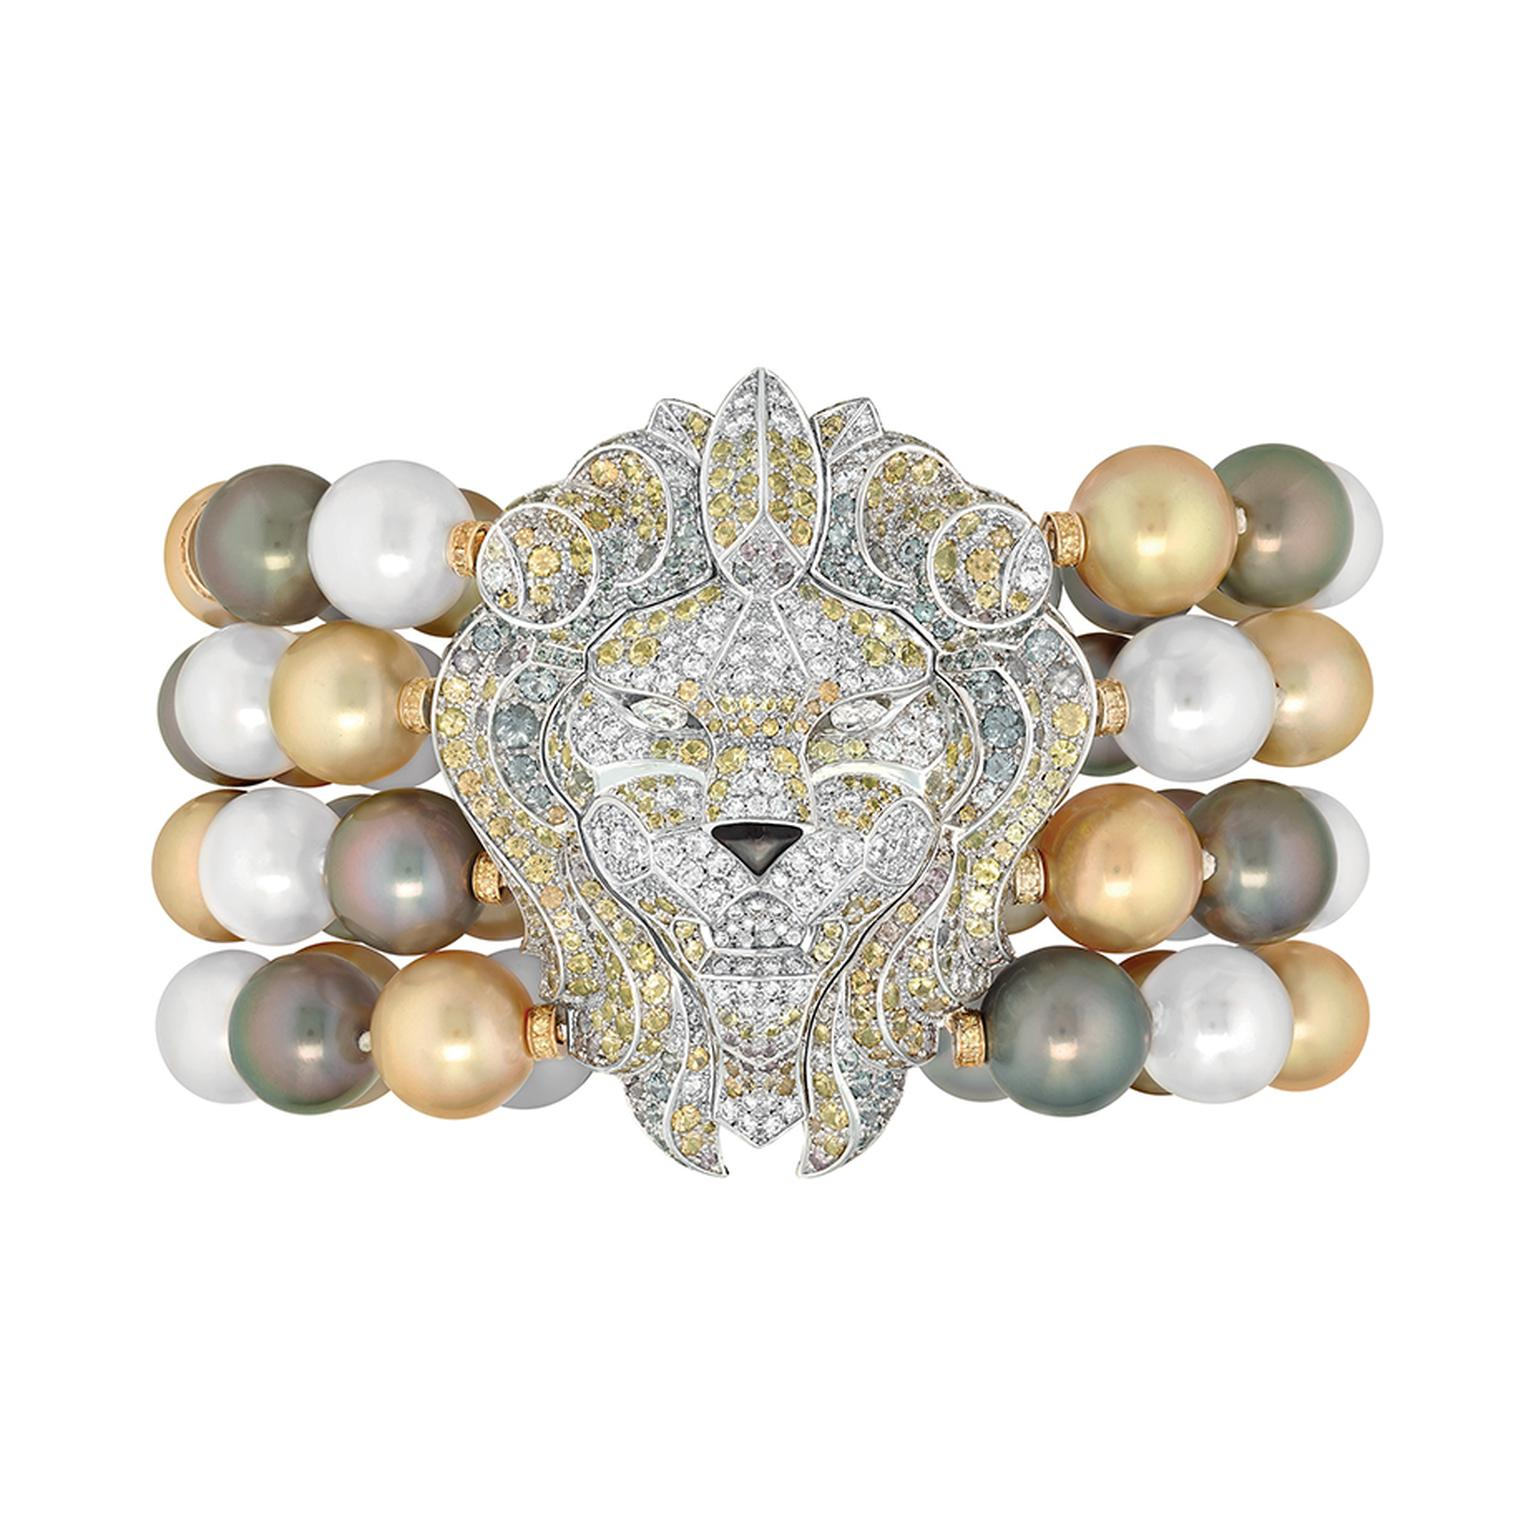 Chanel 'Lion Baroque' bracelet bracelet with 62 Tahitian and South Sea pearls, diamonds and sapphires in white and yellow gold, from the Les Perles de Chanel high jewellery collection